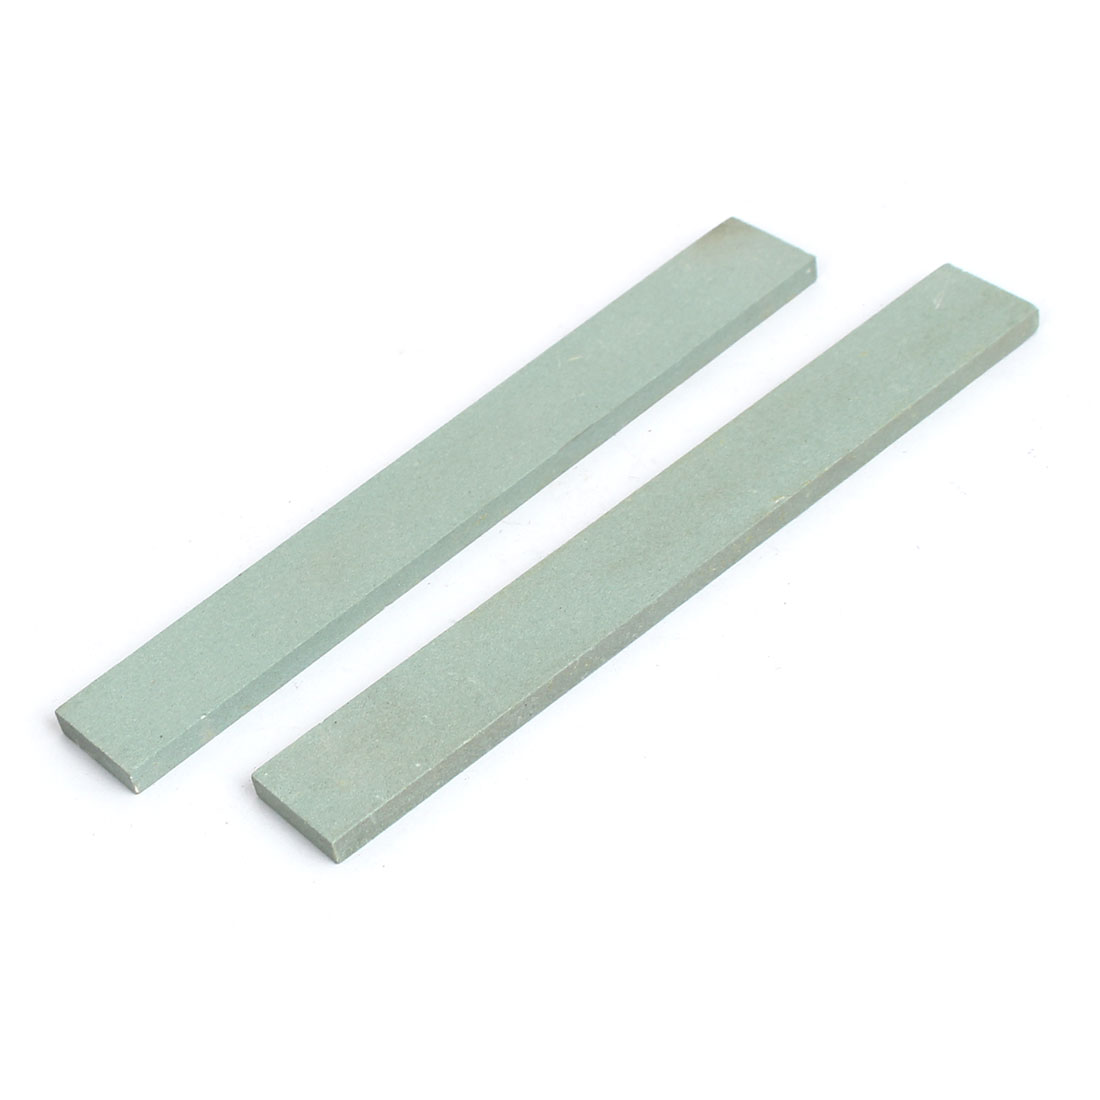 150mm x 20mm x 5mm Engineered Abrasives Grinding Rectangular Polishing Oil Stone Stick Sharpener 2 Pcs